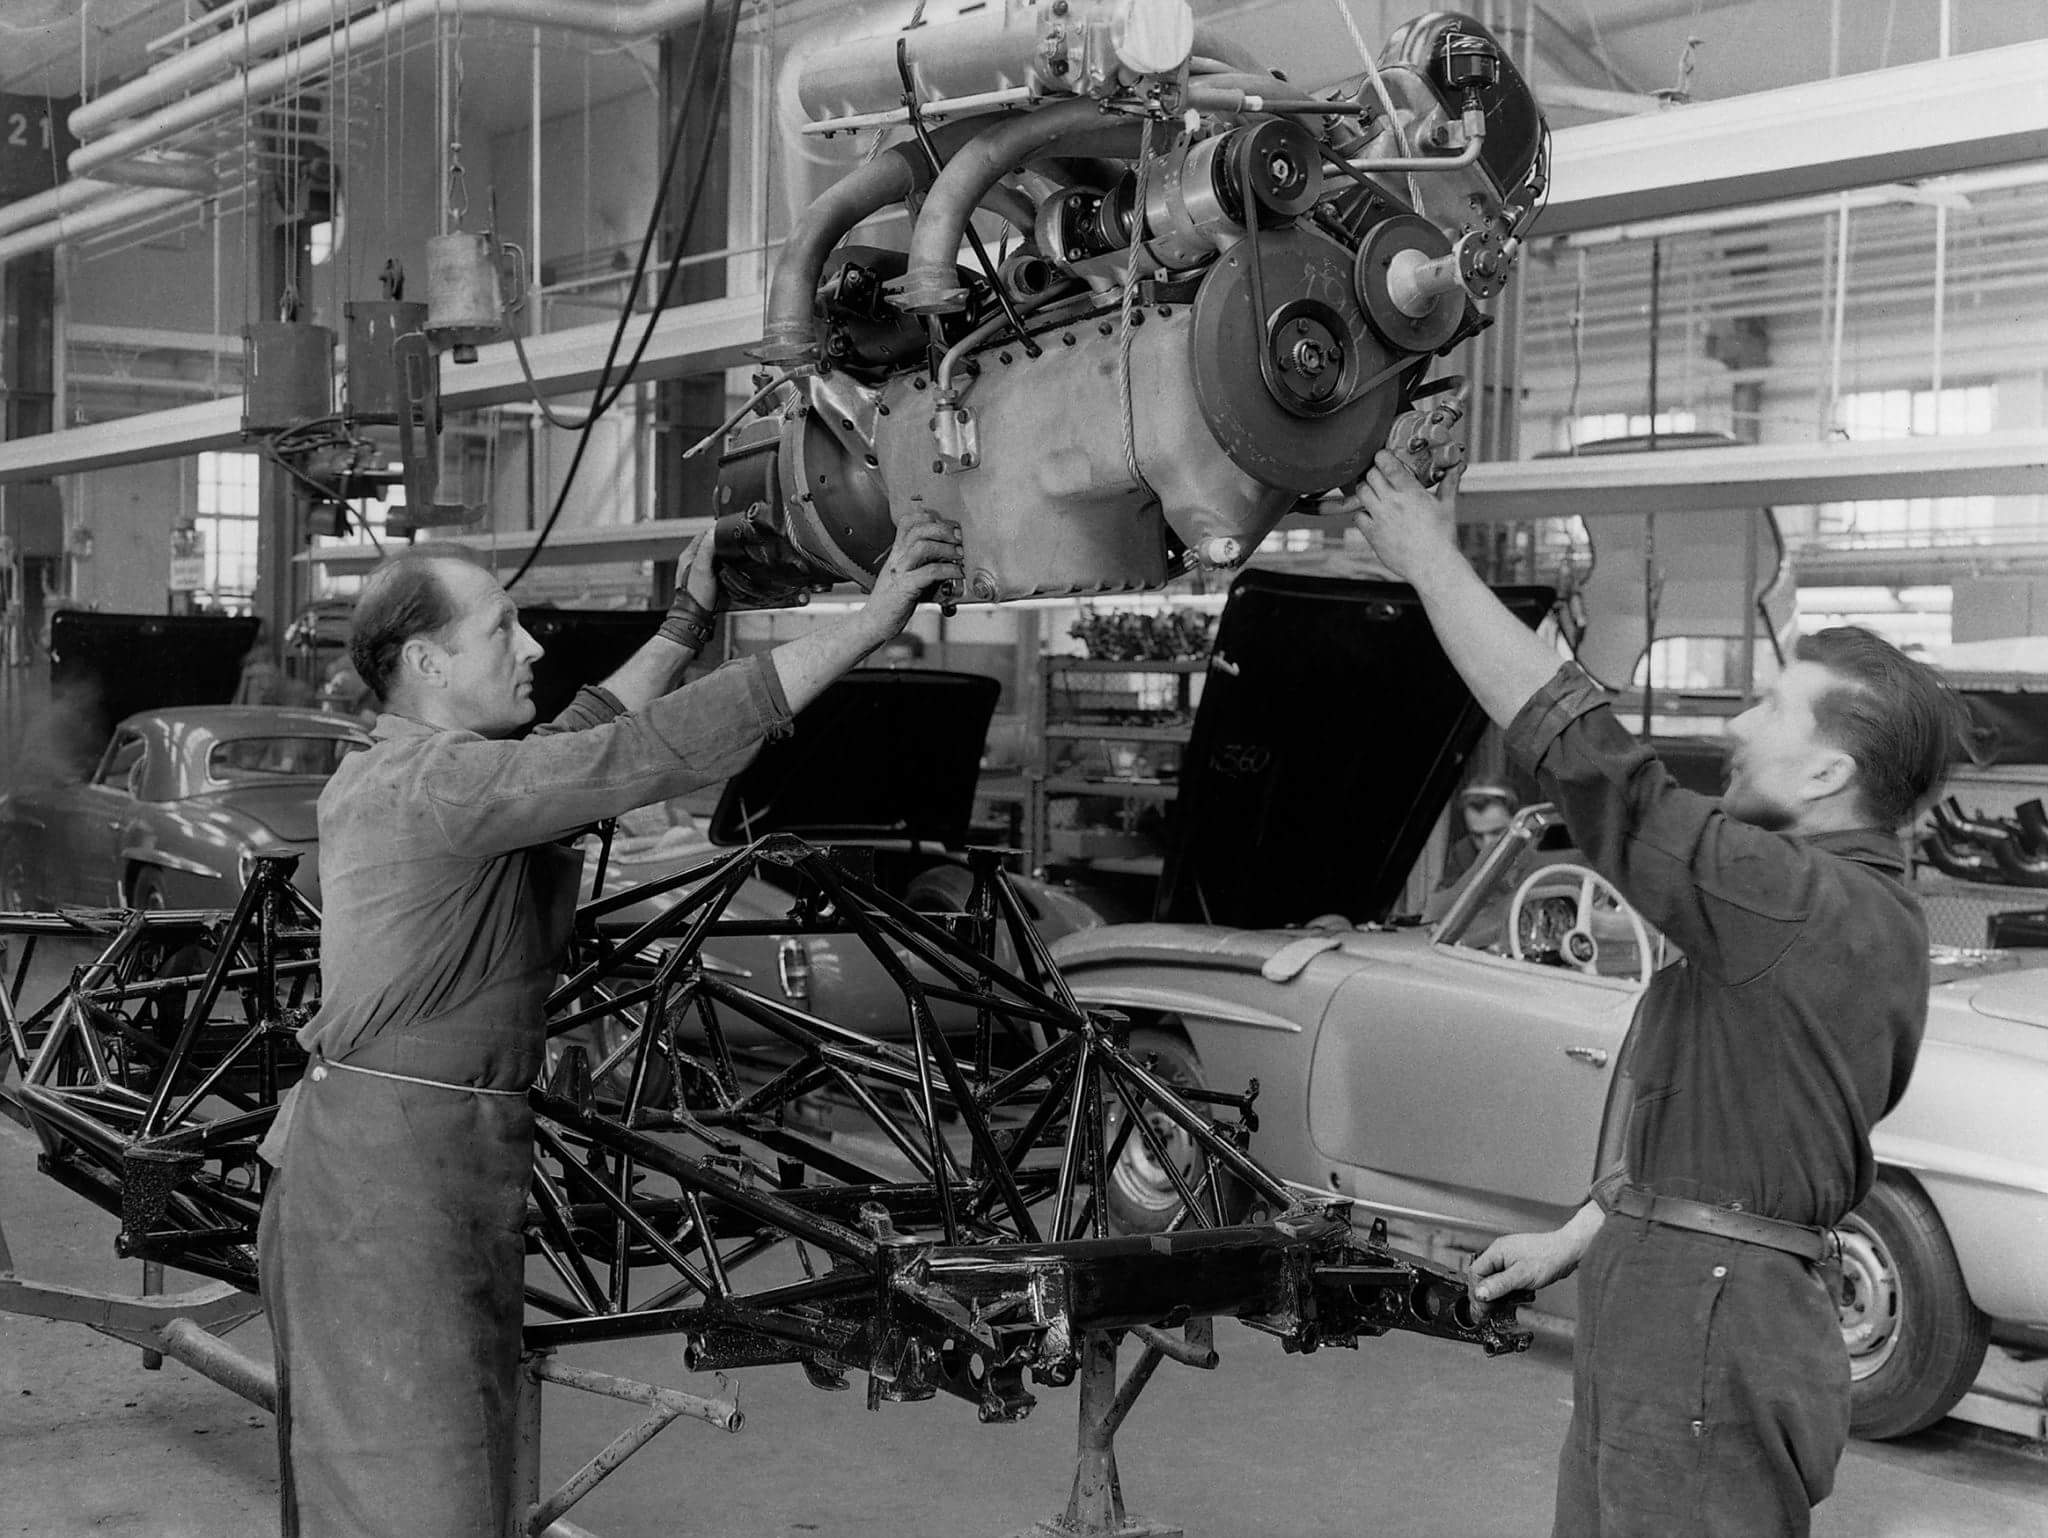 Assembly Mercedes-Benz, 20 February '1958